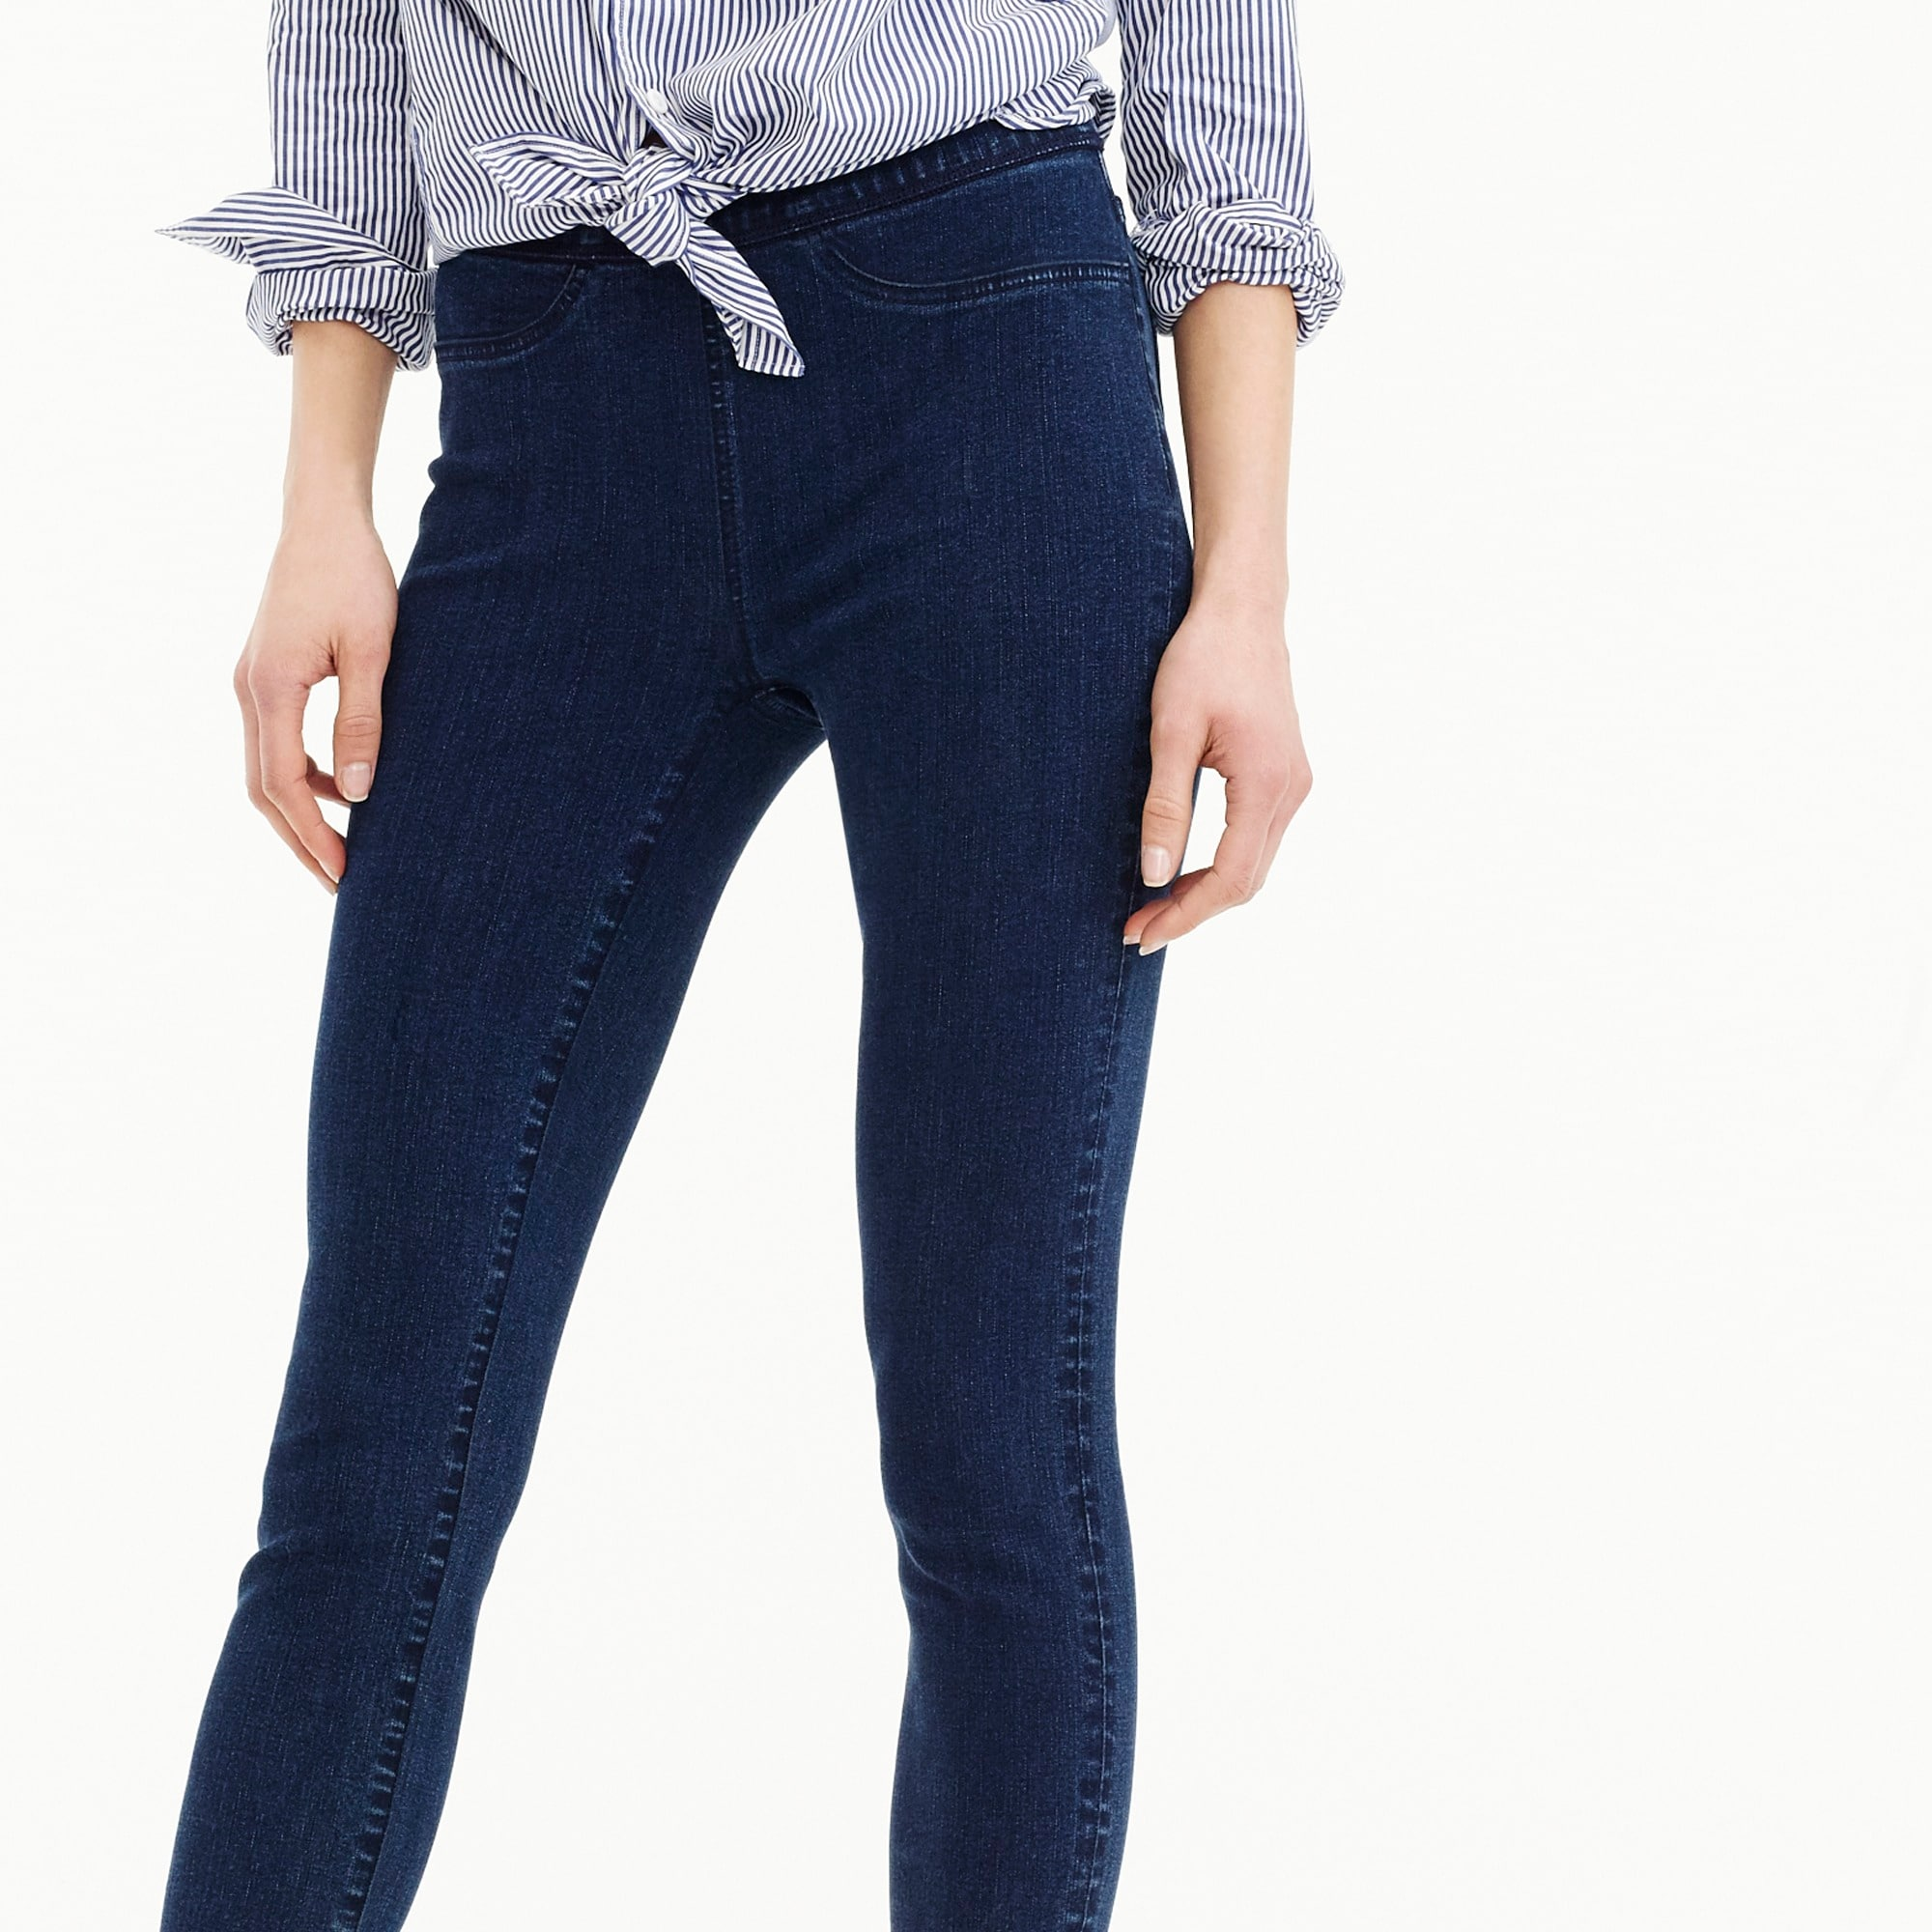 womens Tall Pull-on toothpick jean in indigo